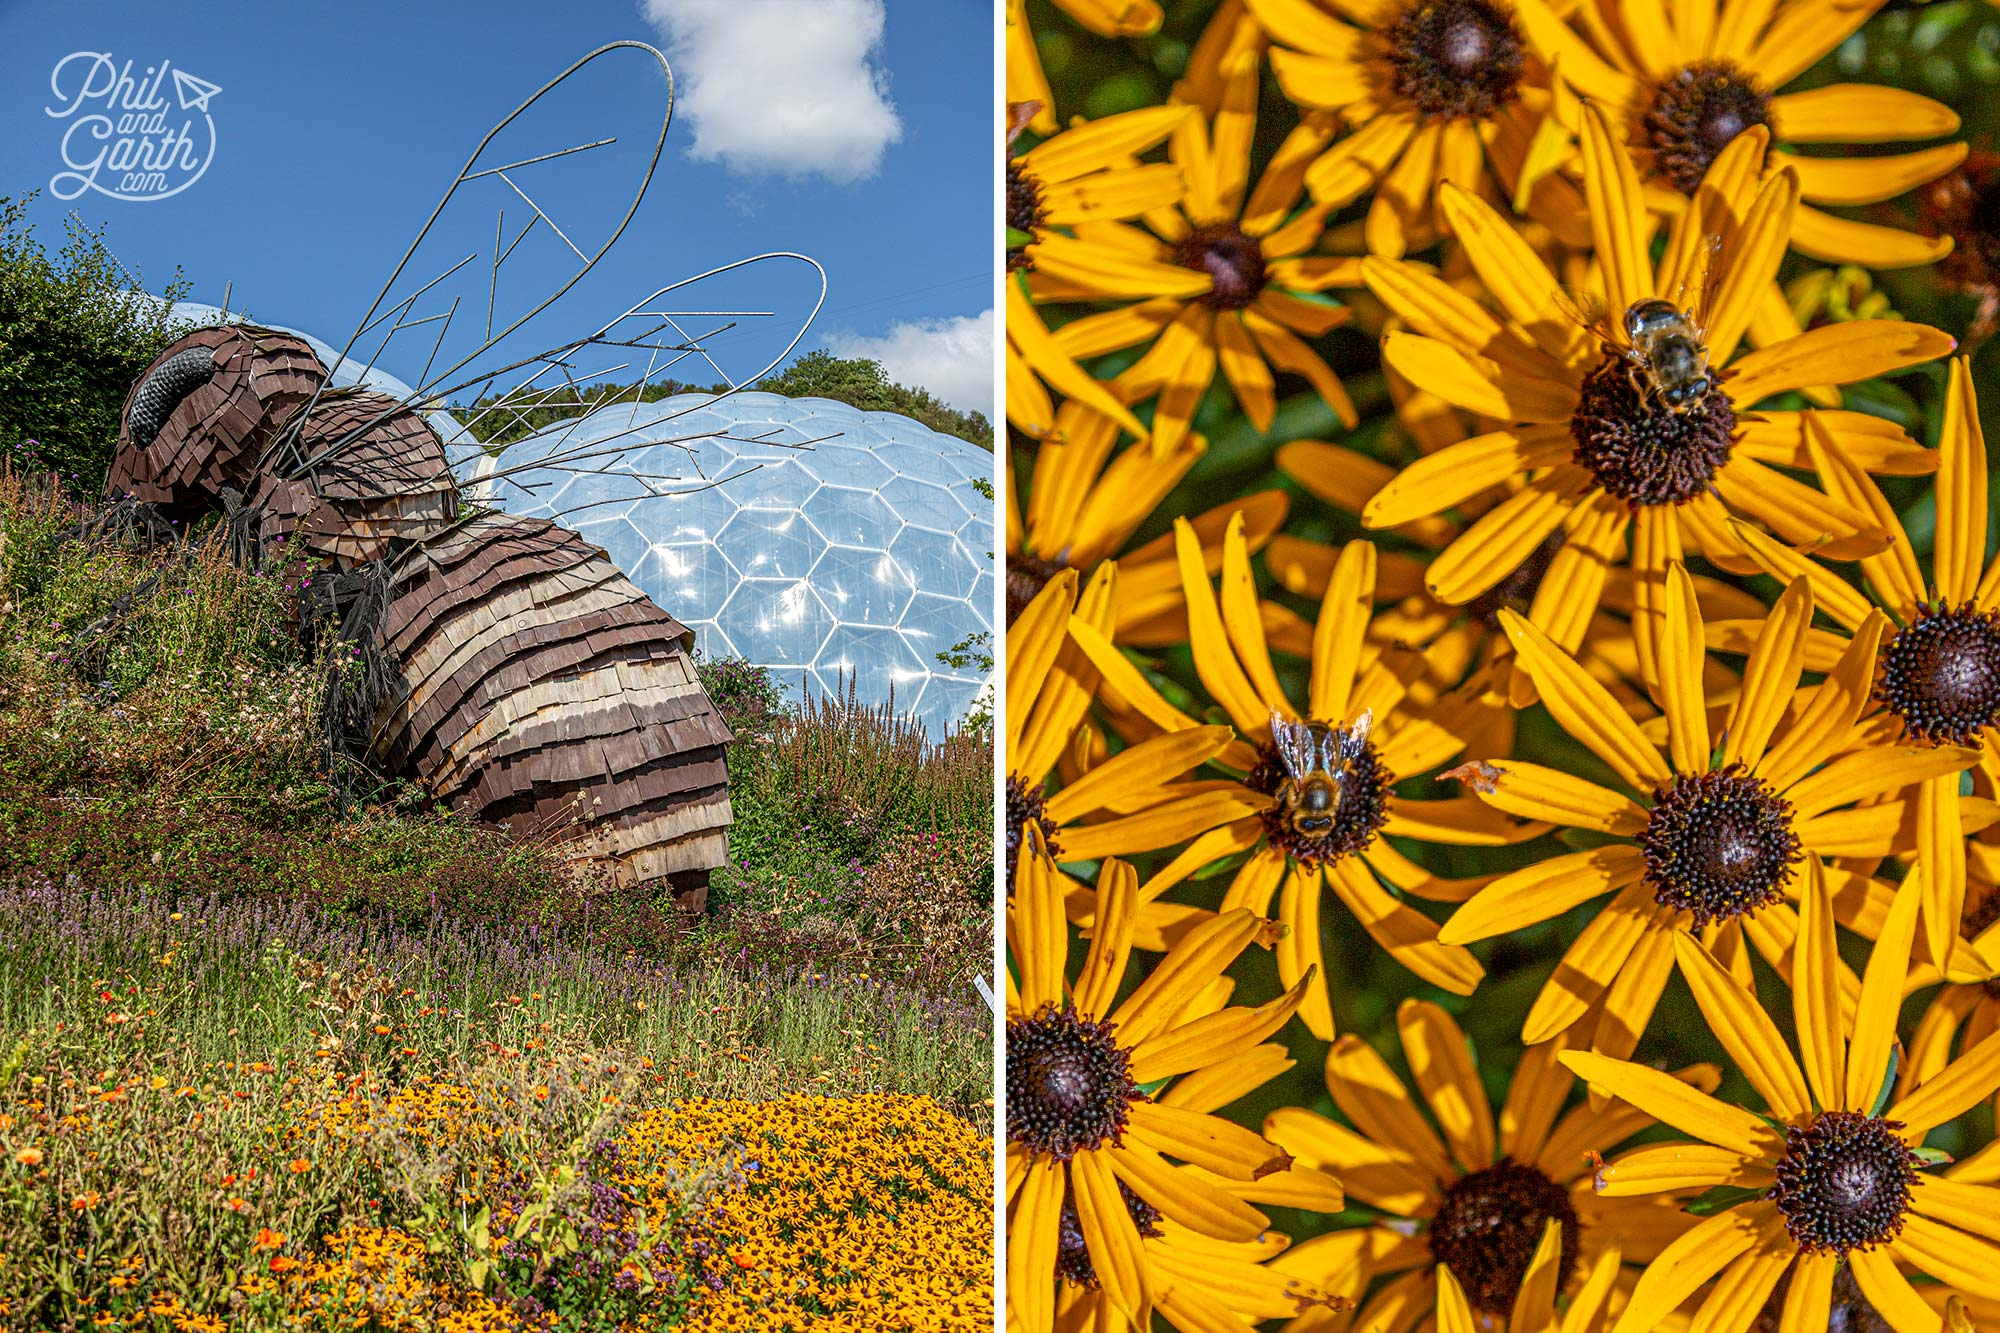 The Eden Project's iconic giant bee sculpture called Bombus